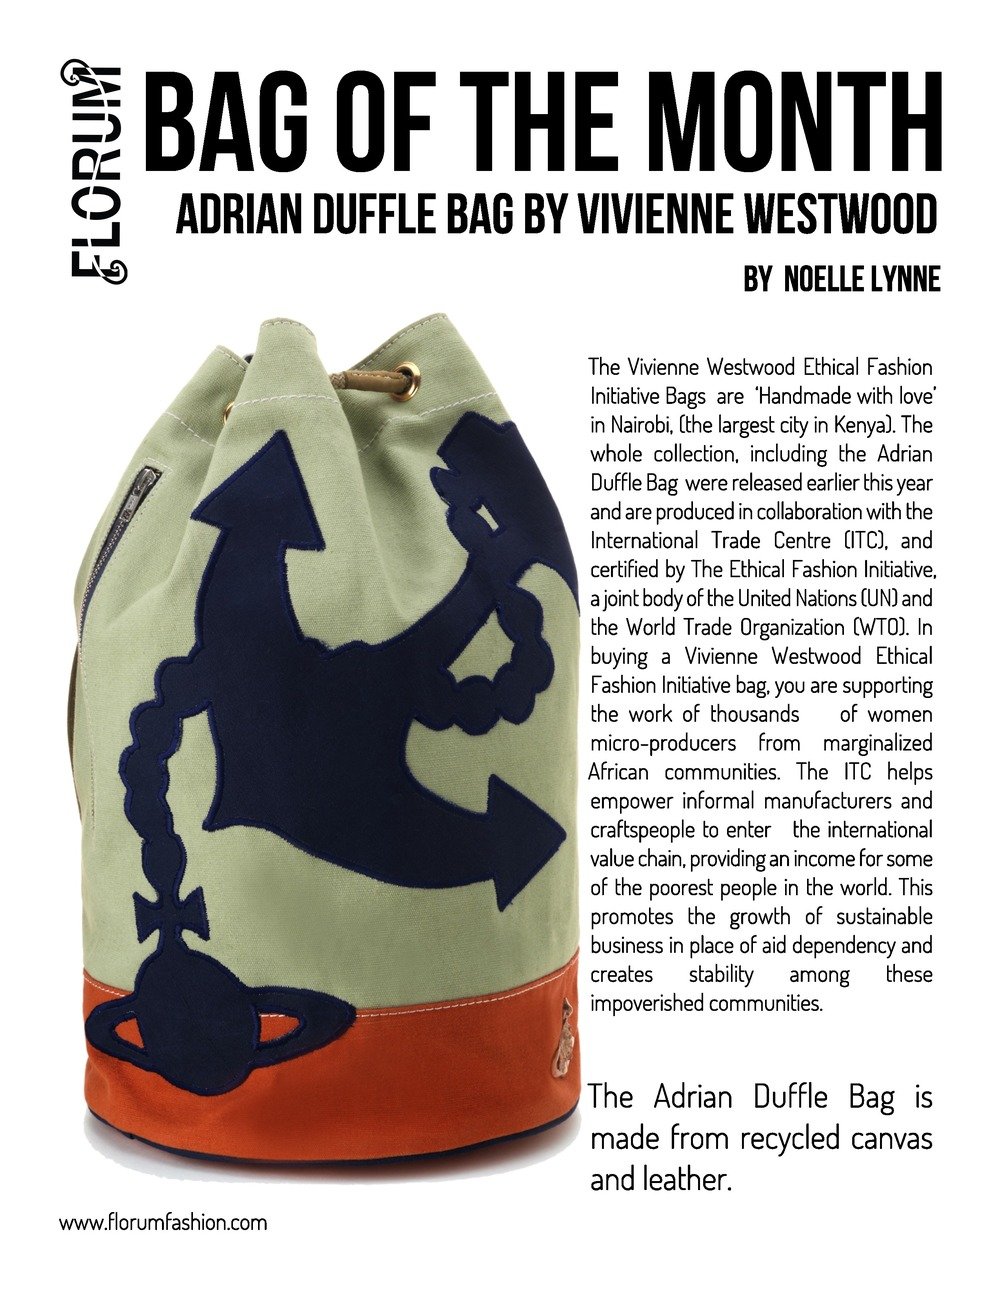 Florum Fashion Magazine Bag of the Month by Noelle Lynne feat Vivienne Westwood